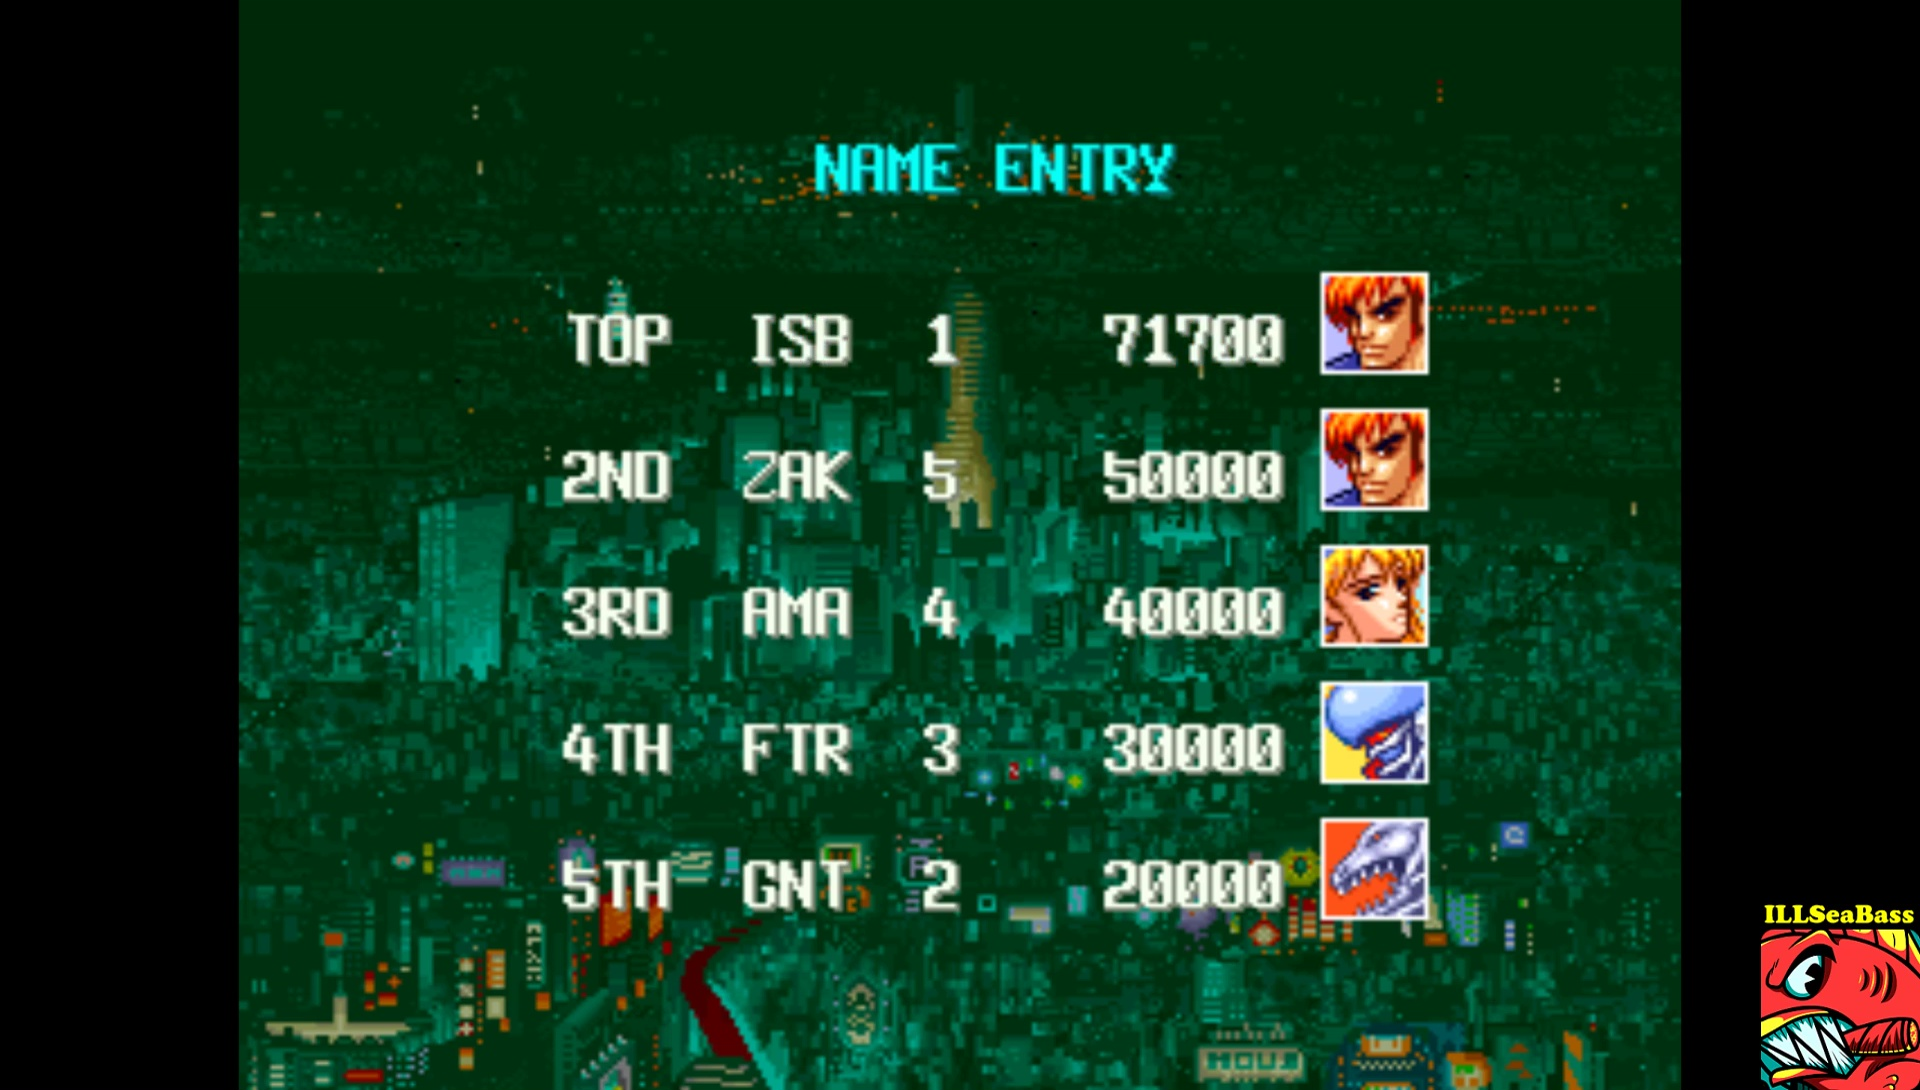 ILLSeaBass: Denjin Makai [denjinmk] (Arcade Emulated / M.A.M.E.) 71,700 points on 2017-09-04 18:15:55